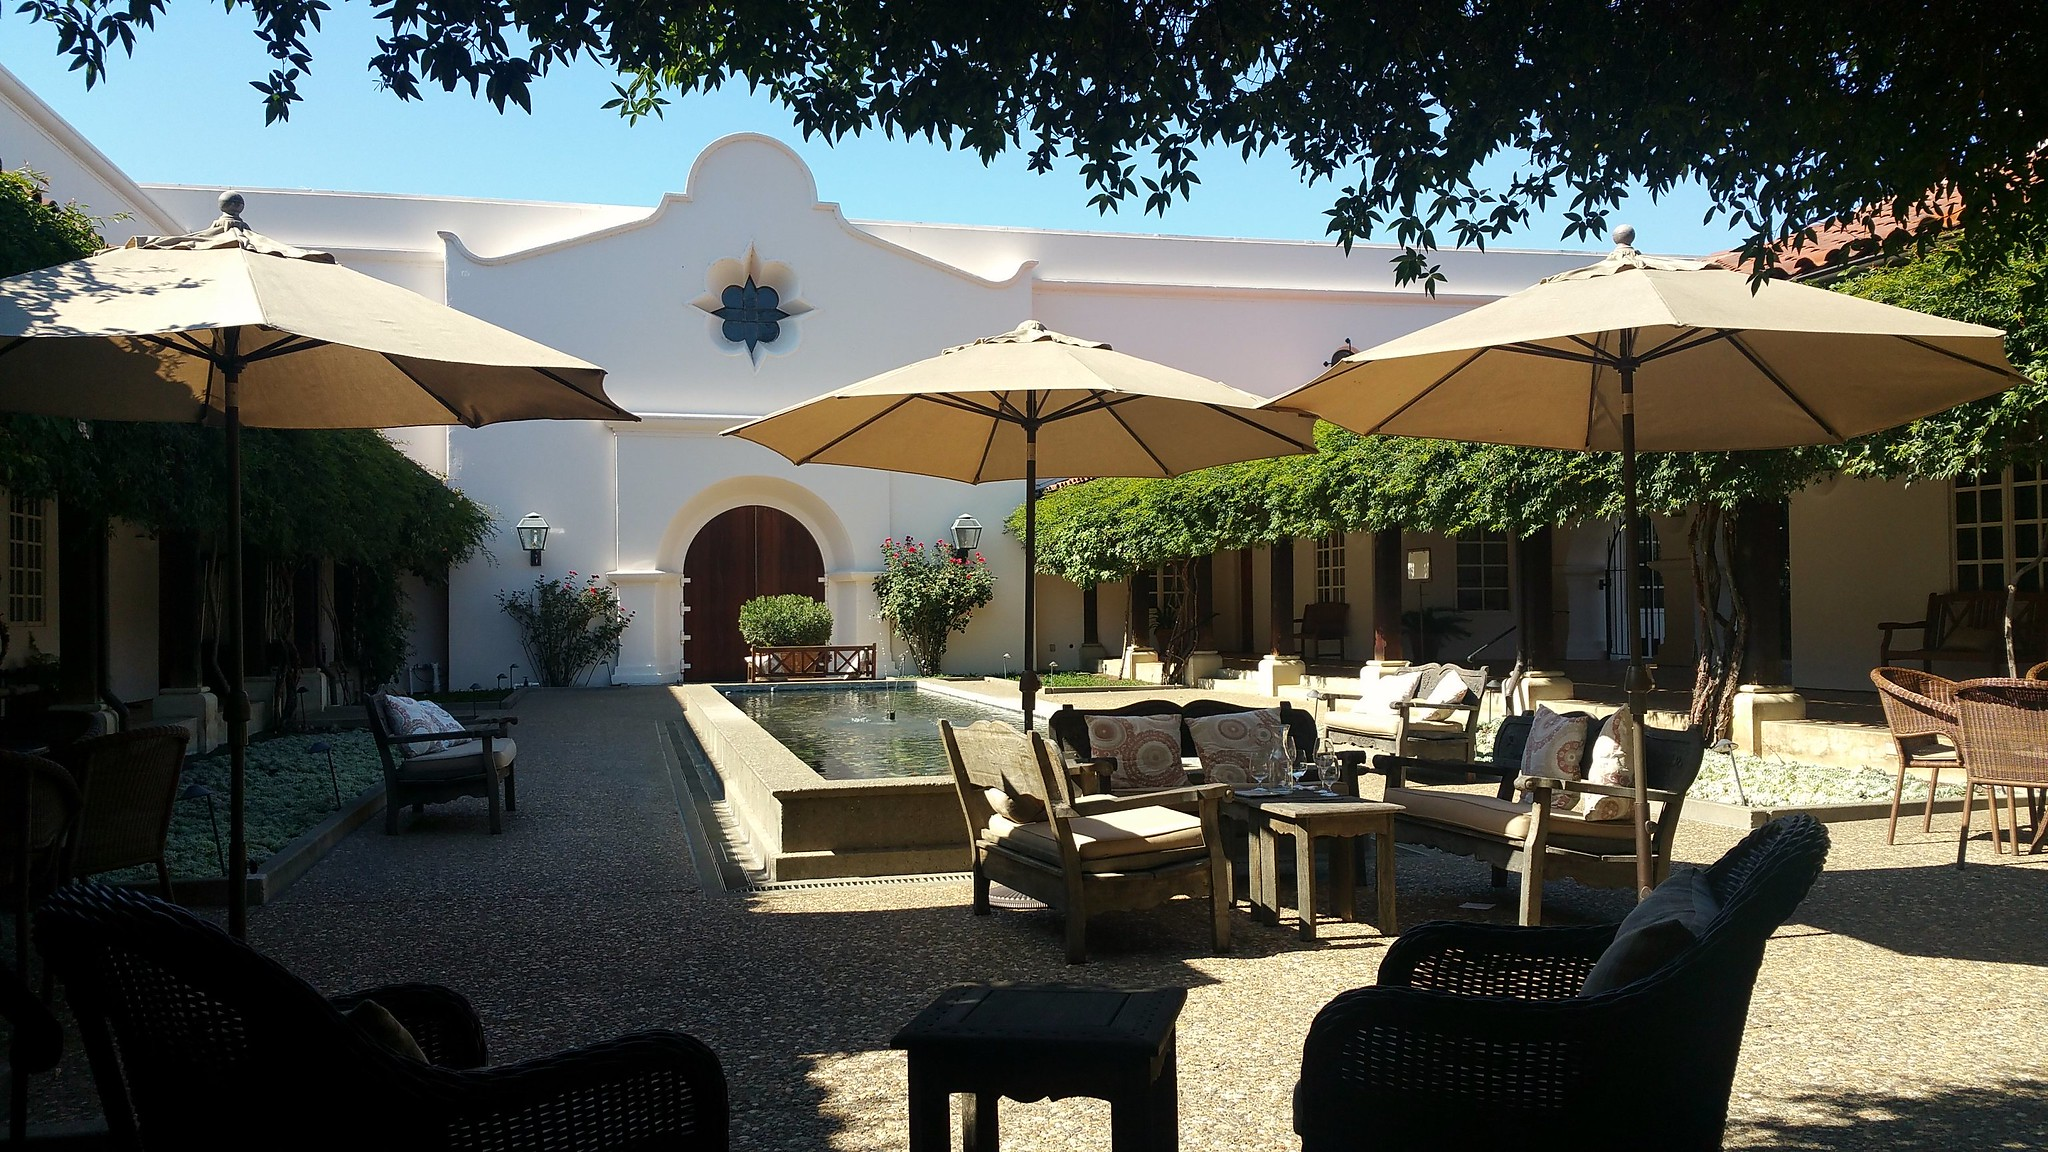 The courtyard at Michel Schlumberger